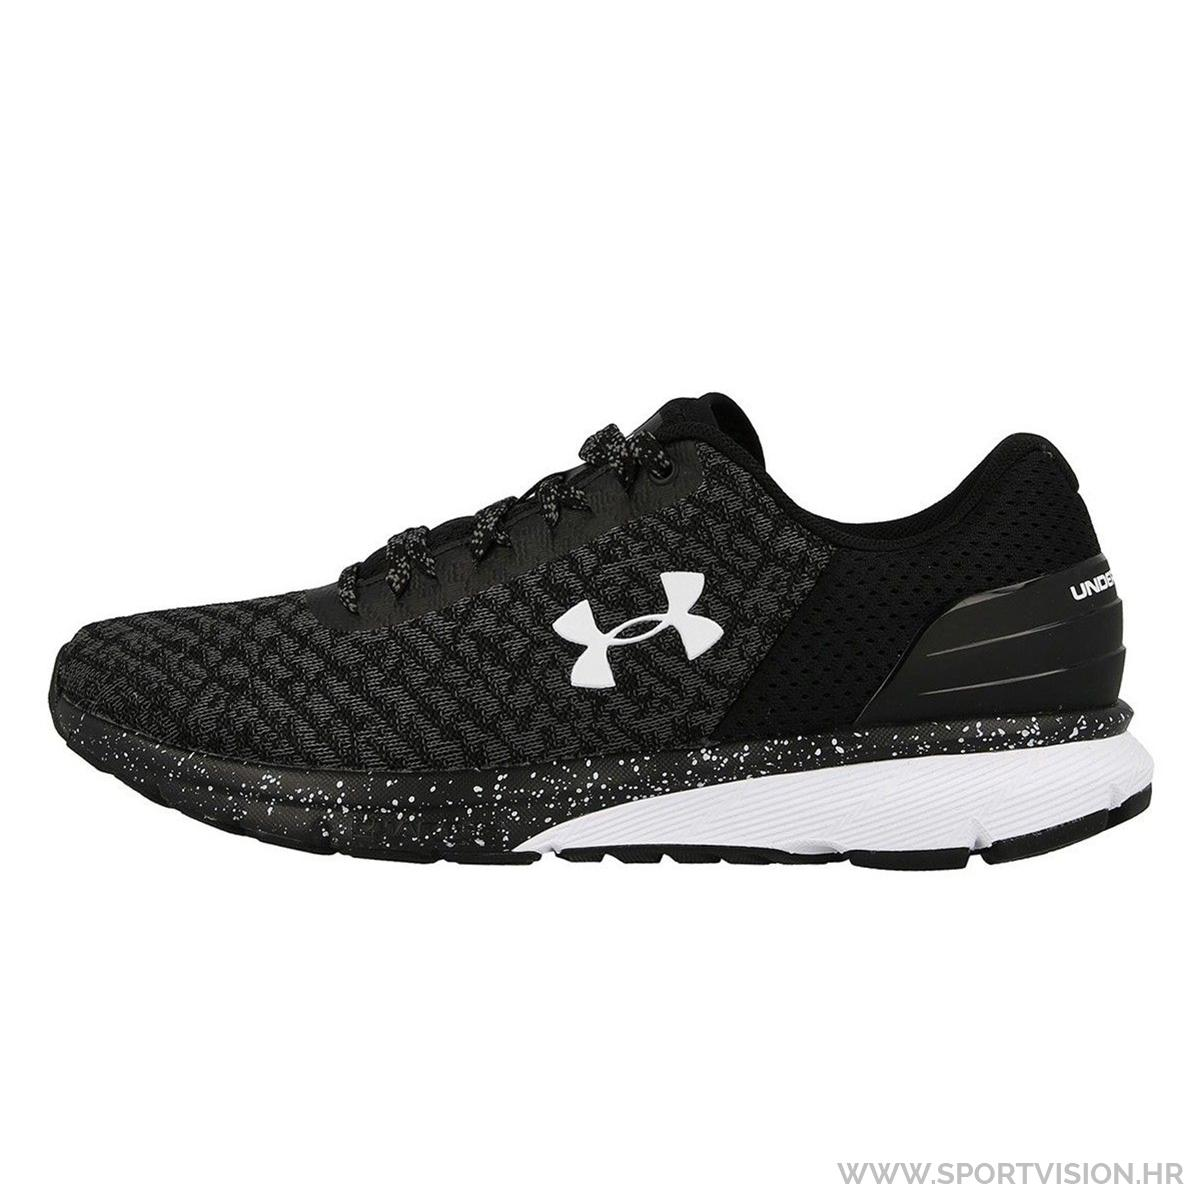 UNDER ARMOUR tenisice W CHARGED ESCAPE 2